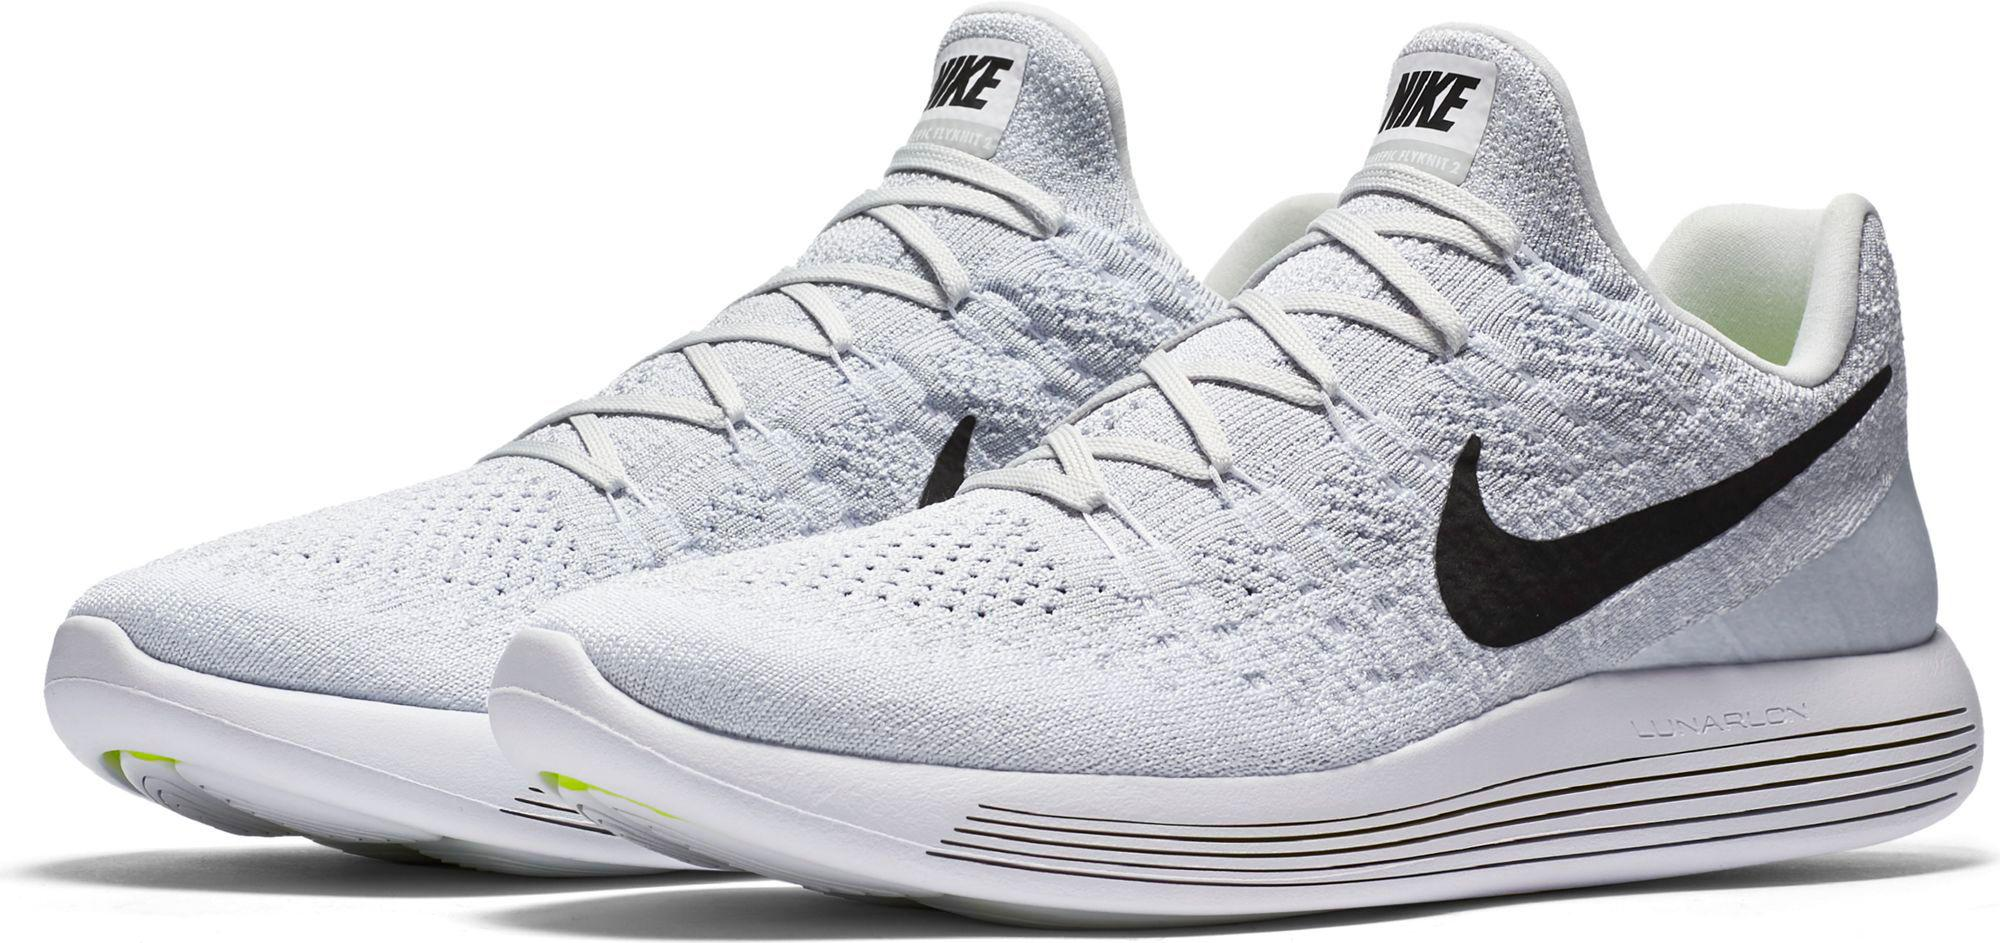 35265cc543b1 Lyst - Nike Lunarepic Low Flyknit 2 Running Shoes in White for Men